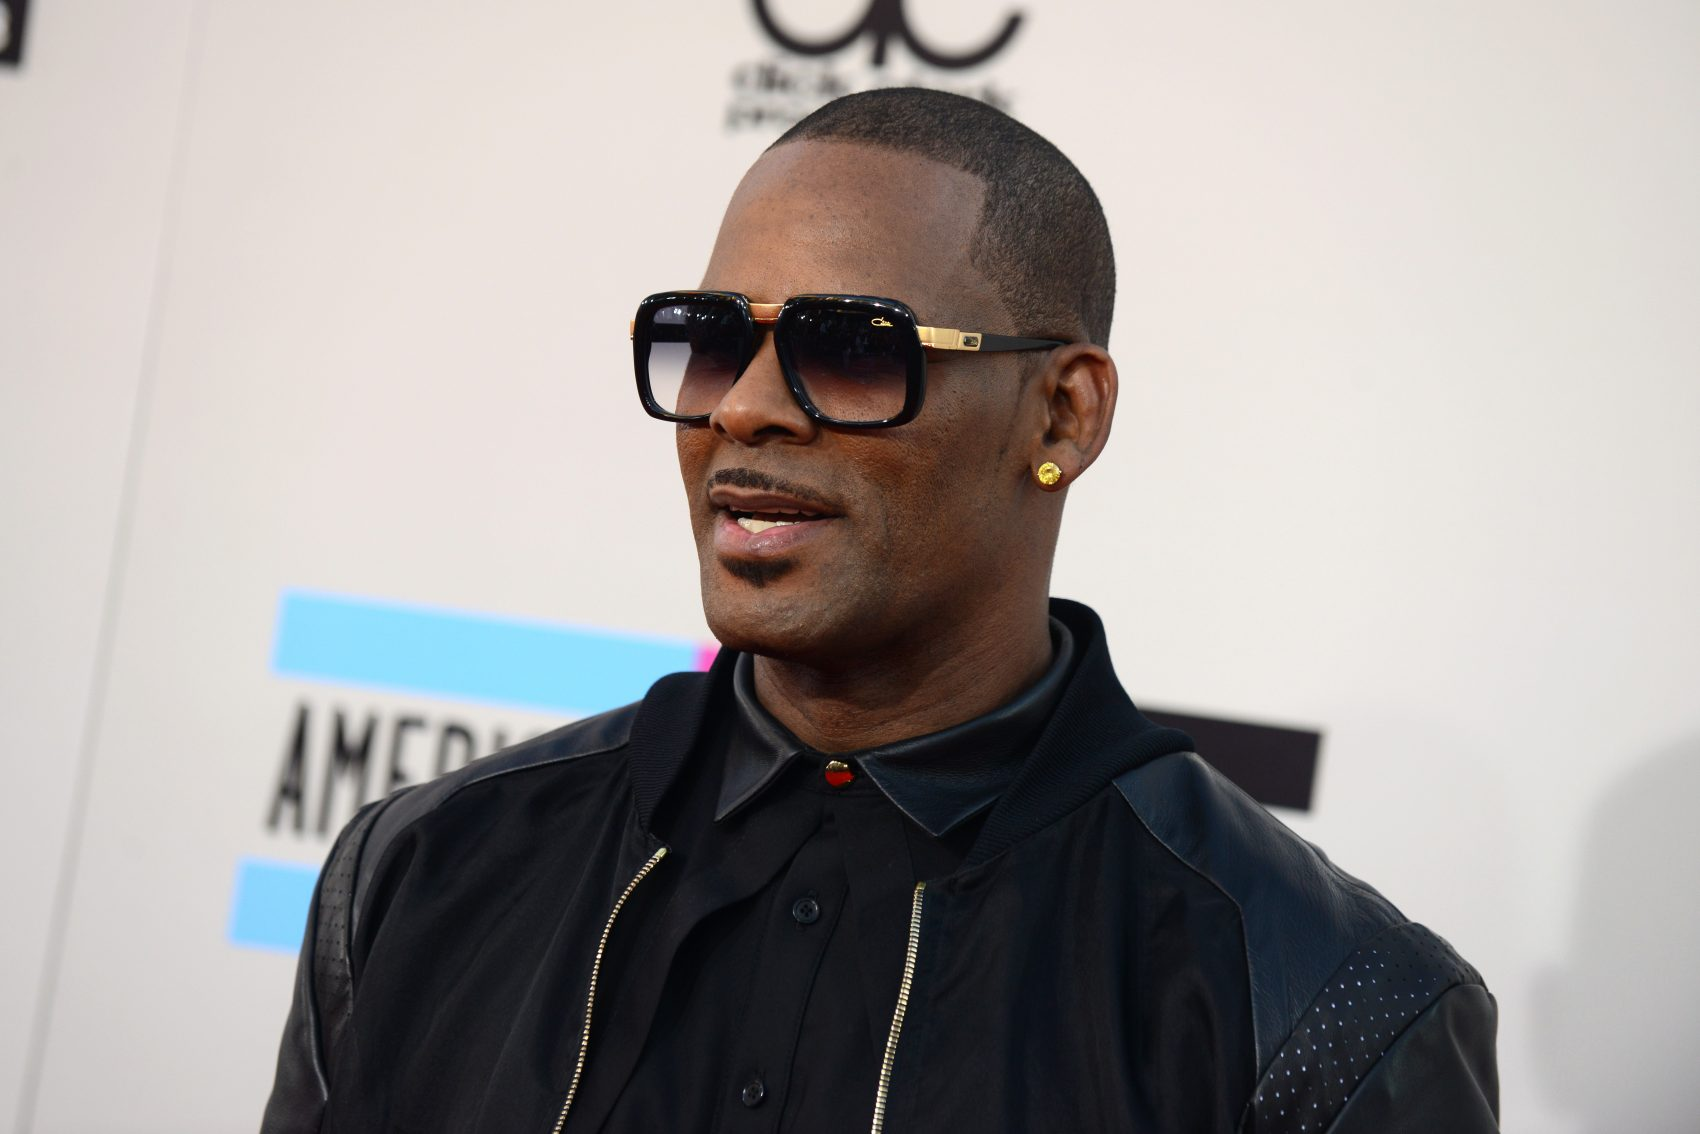 r-kelly-allegations-celebs-spoke-out-photo